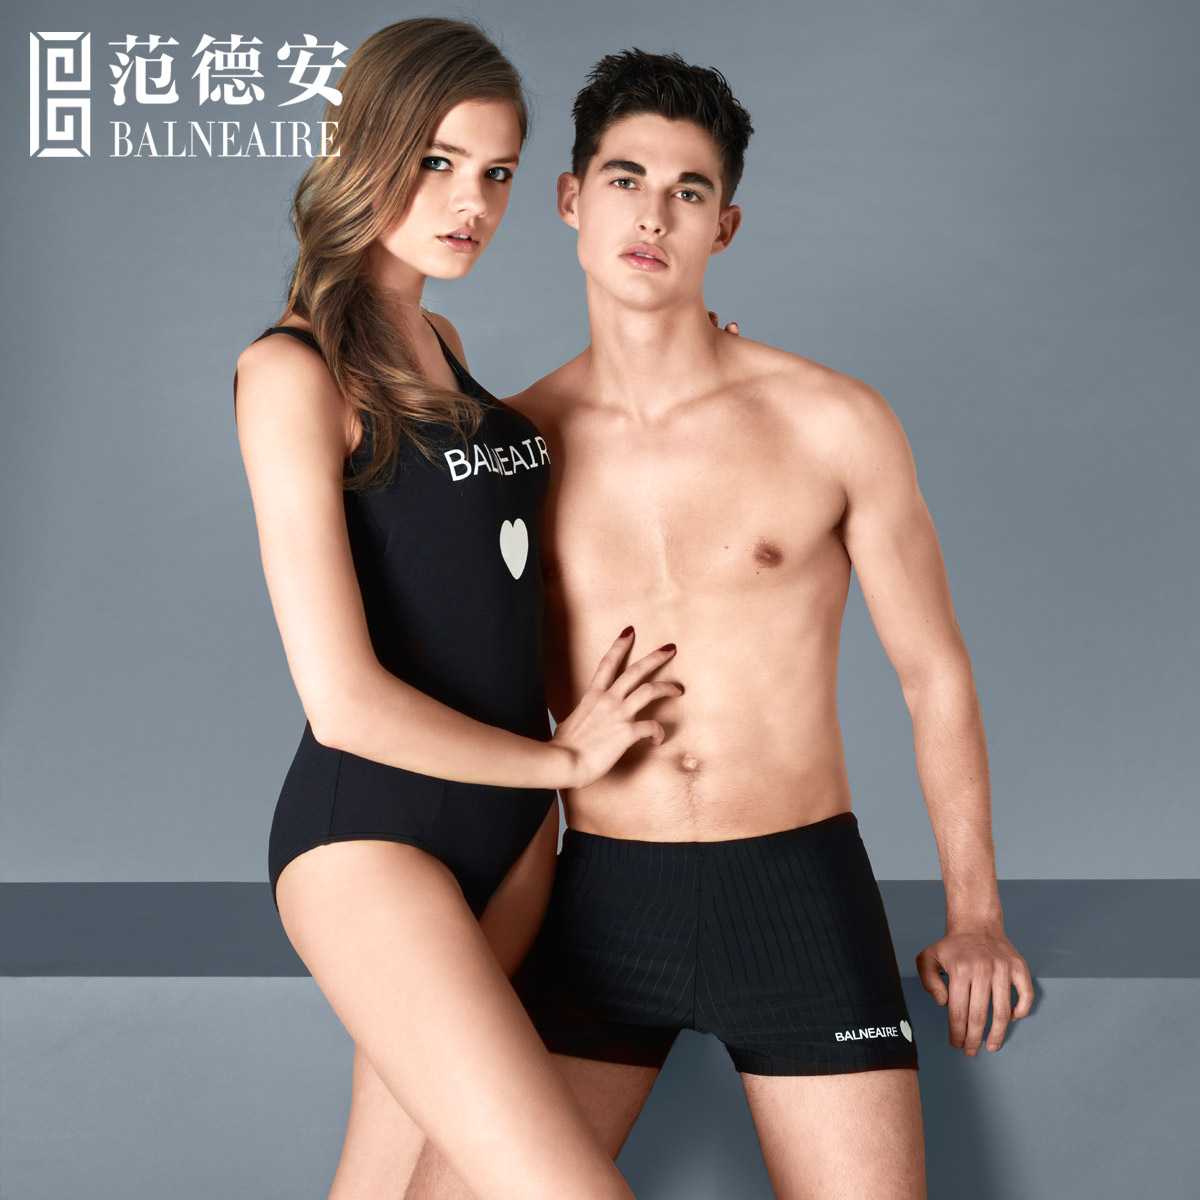 c476ffd584fc5 Buy Fan dean swimsuit hot springs resort suit lovers swimsuit small chest  gather siamese boxer female swimsuit sports men and speedos in Cheap Price  on ...